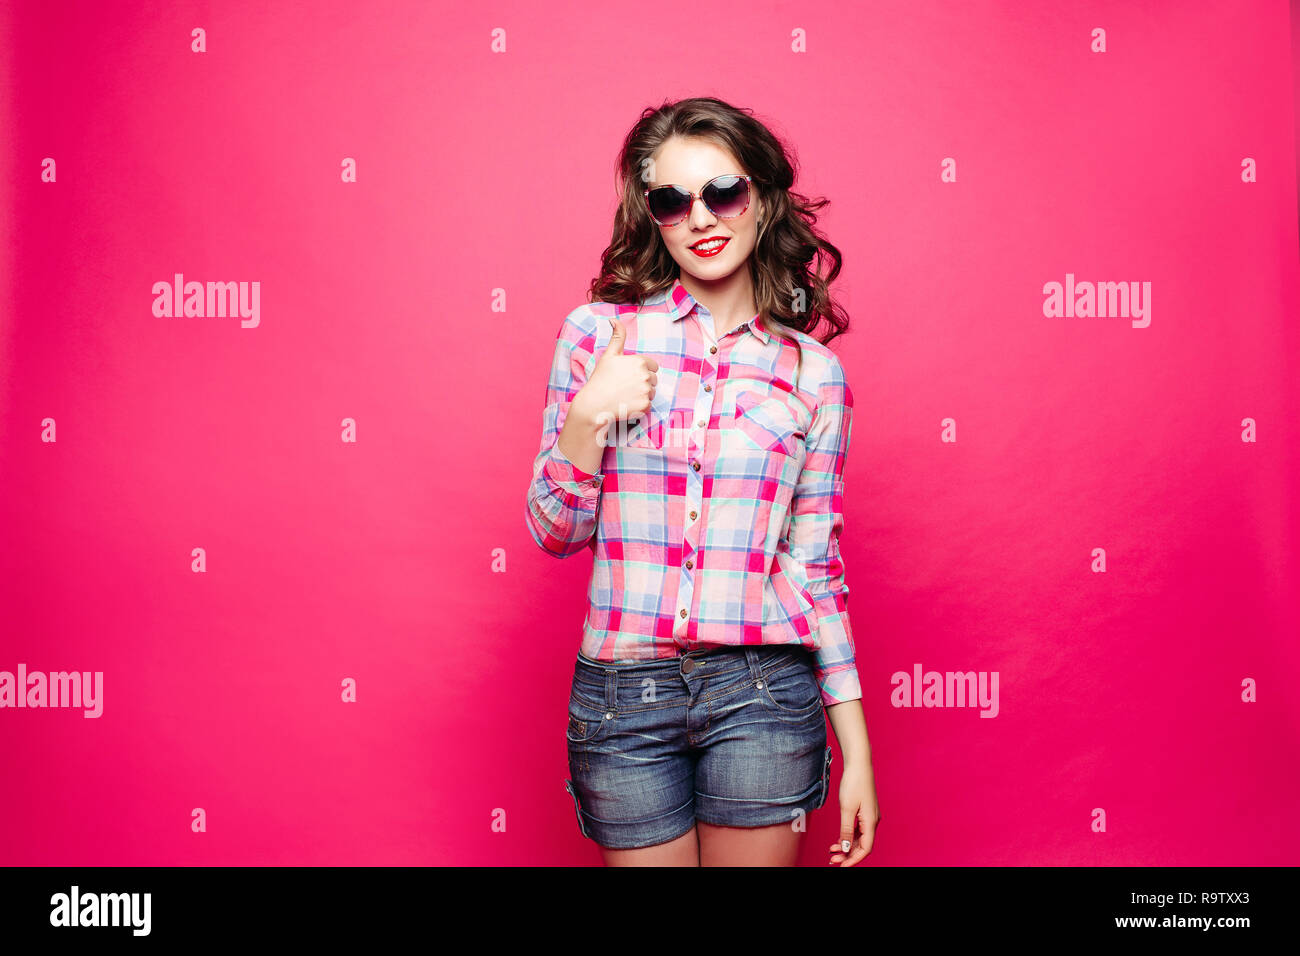 Studio portrait of funny girl in sunglasses showing peace sign with bare teeth over bright magenta background. Isolate. - Stock Image